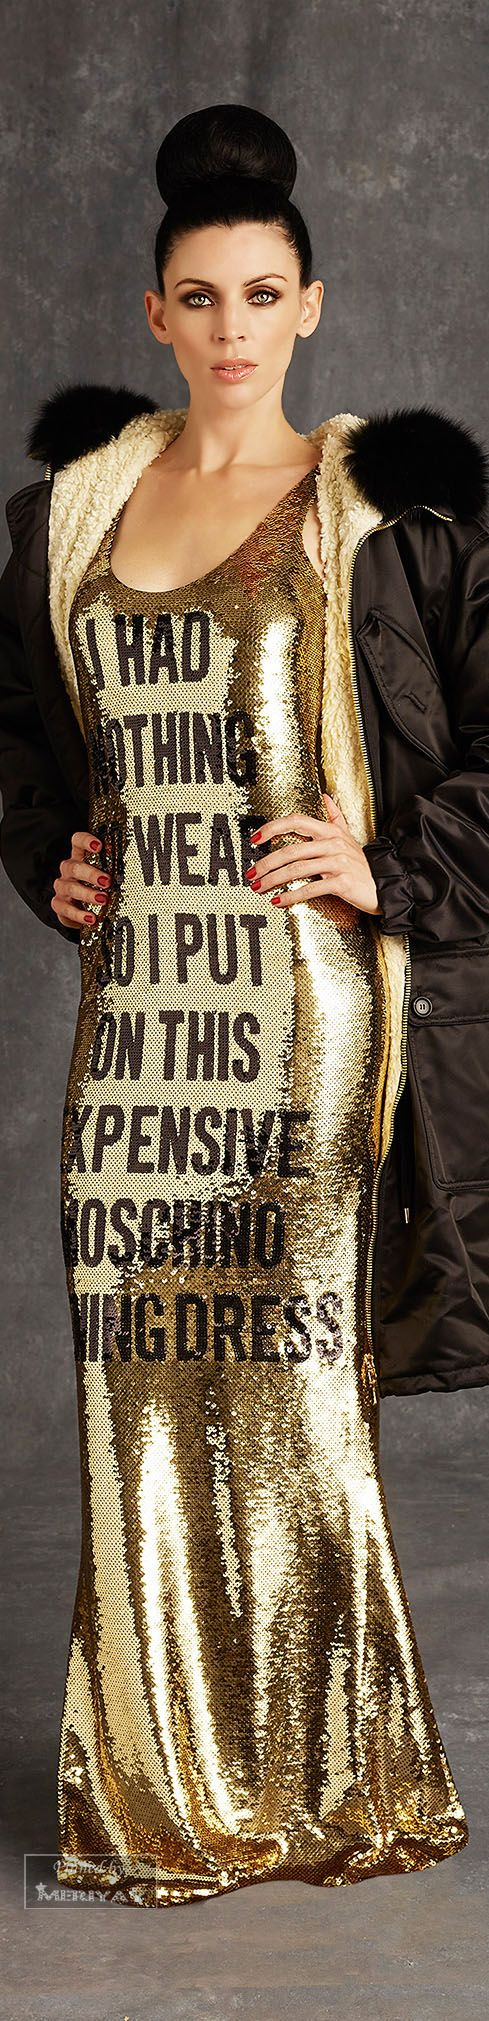 Moschino.Pre-Fall 2015 - #LadyLuxuryDesigns